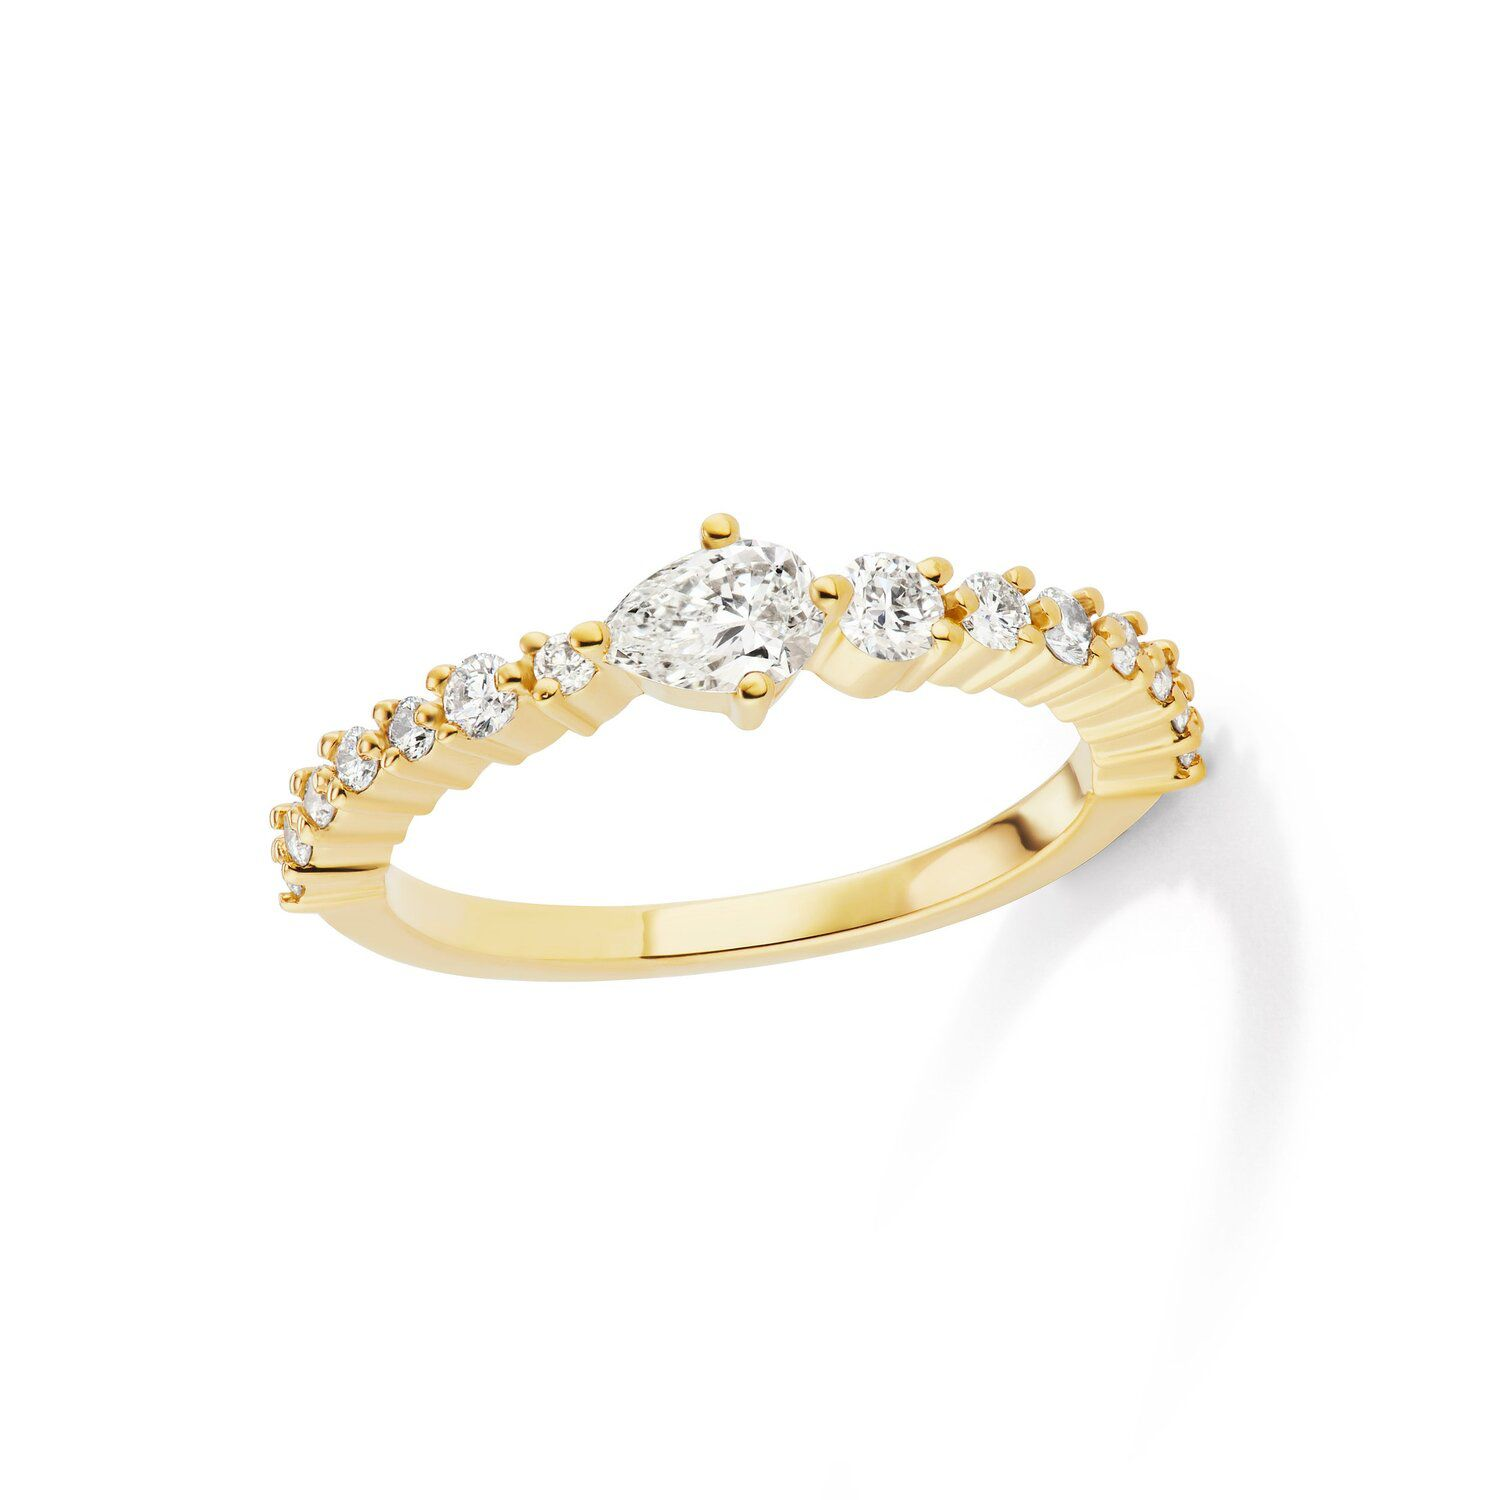 Michelle Fantaci Gold Amaranthus Ring With Pear Shaped Diamond Center